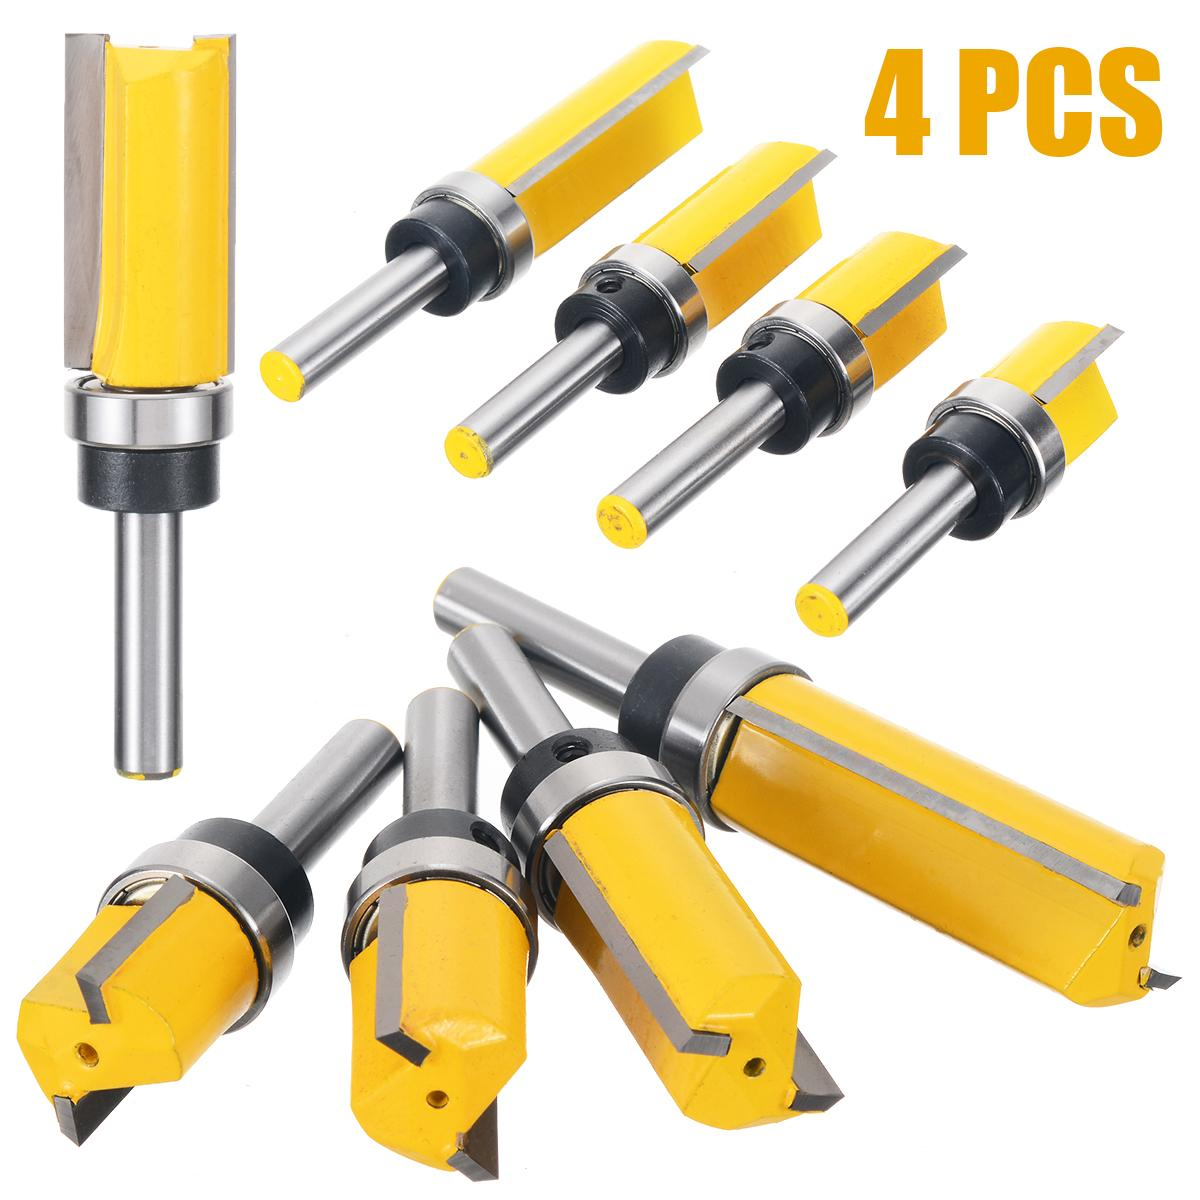 Cutting Length 20mm,25mm,63mm Flute Trimming Milling Cutter MMDSG 3PCS Flush Trim Top and Bottom Bearing Router Bits Size : 12 mm Shank Tungsten Carbide Woodworking Tools